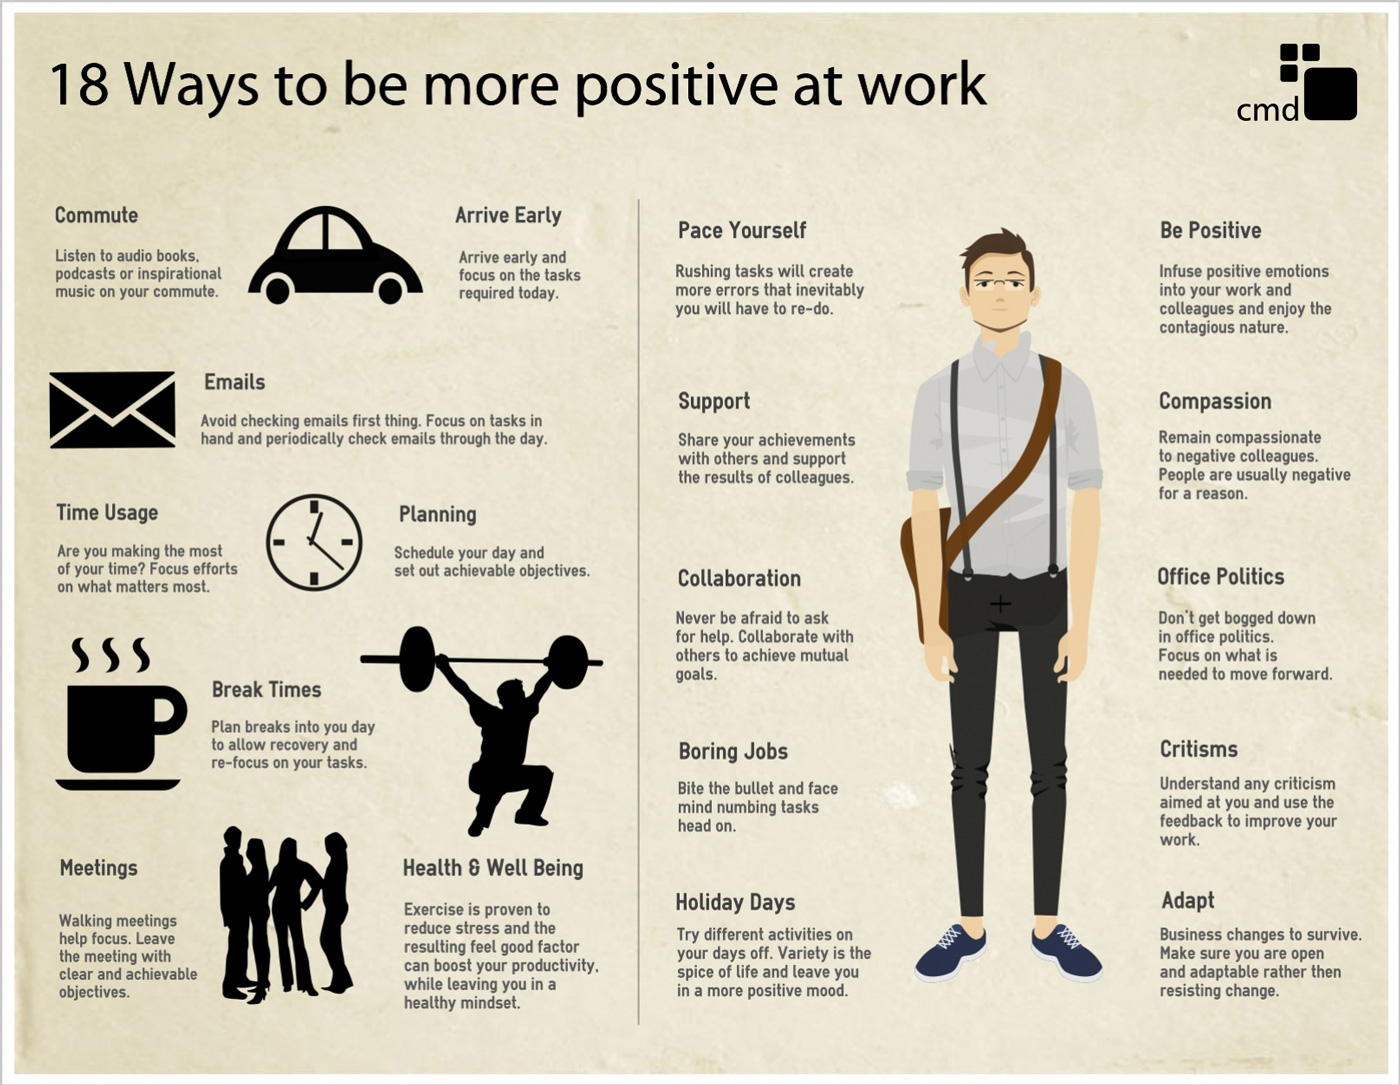 18-More-Positive-Ways-Infographic.jpg